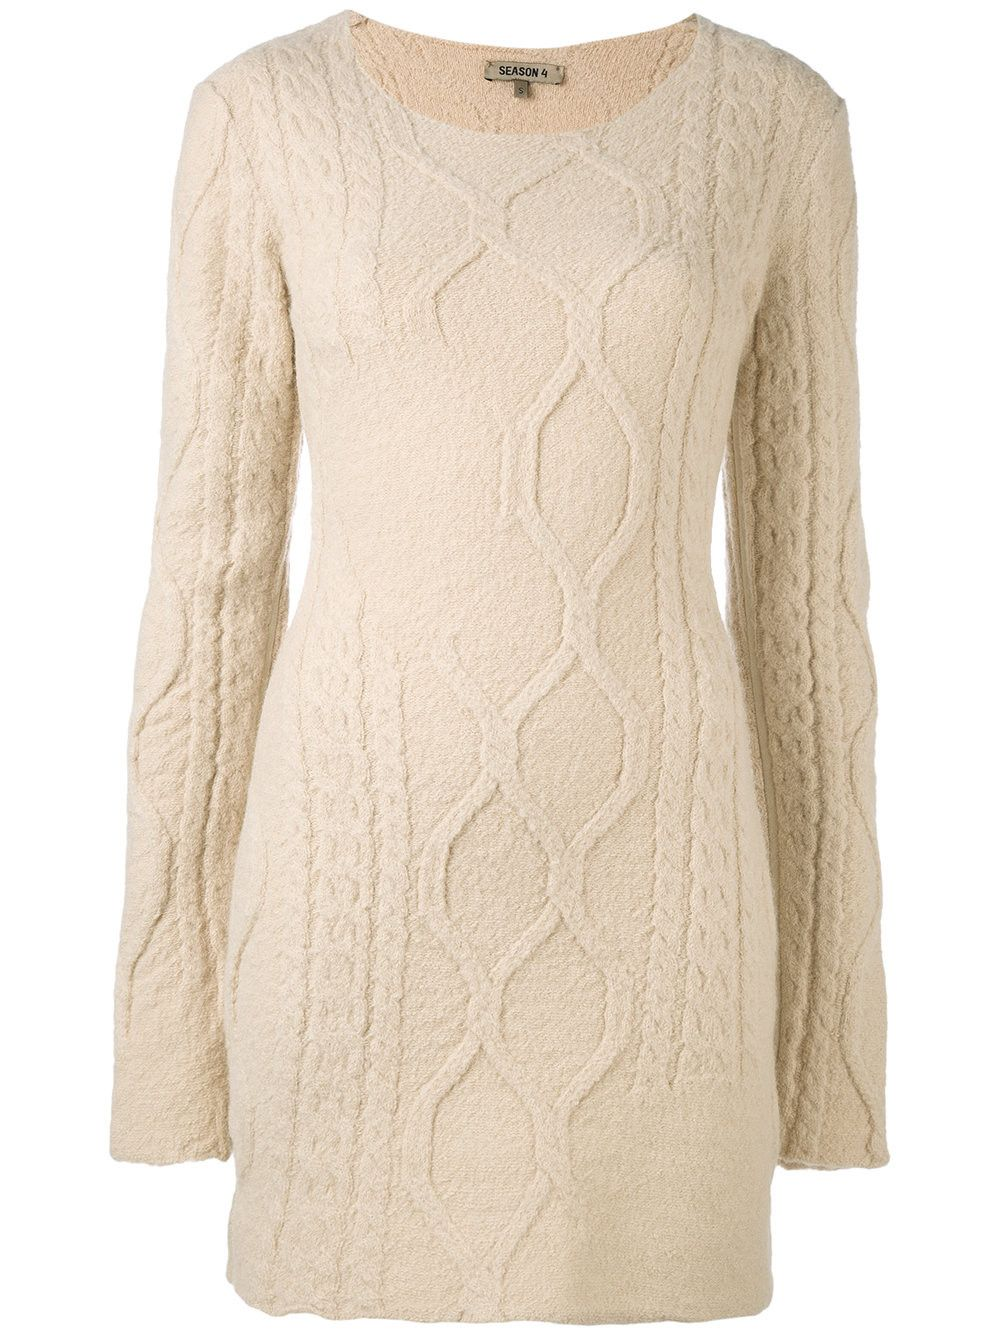 long-sleeved knitted dress - Nude & Neutrals Yeezy by Kanye West pVqJe4IeYT